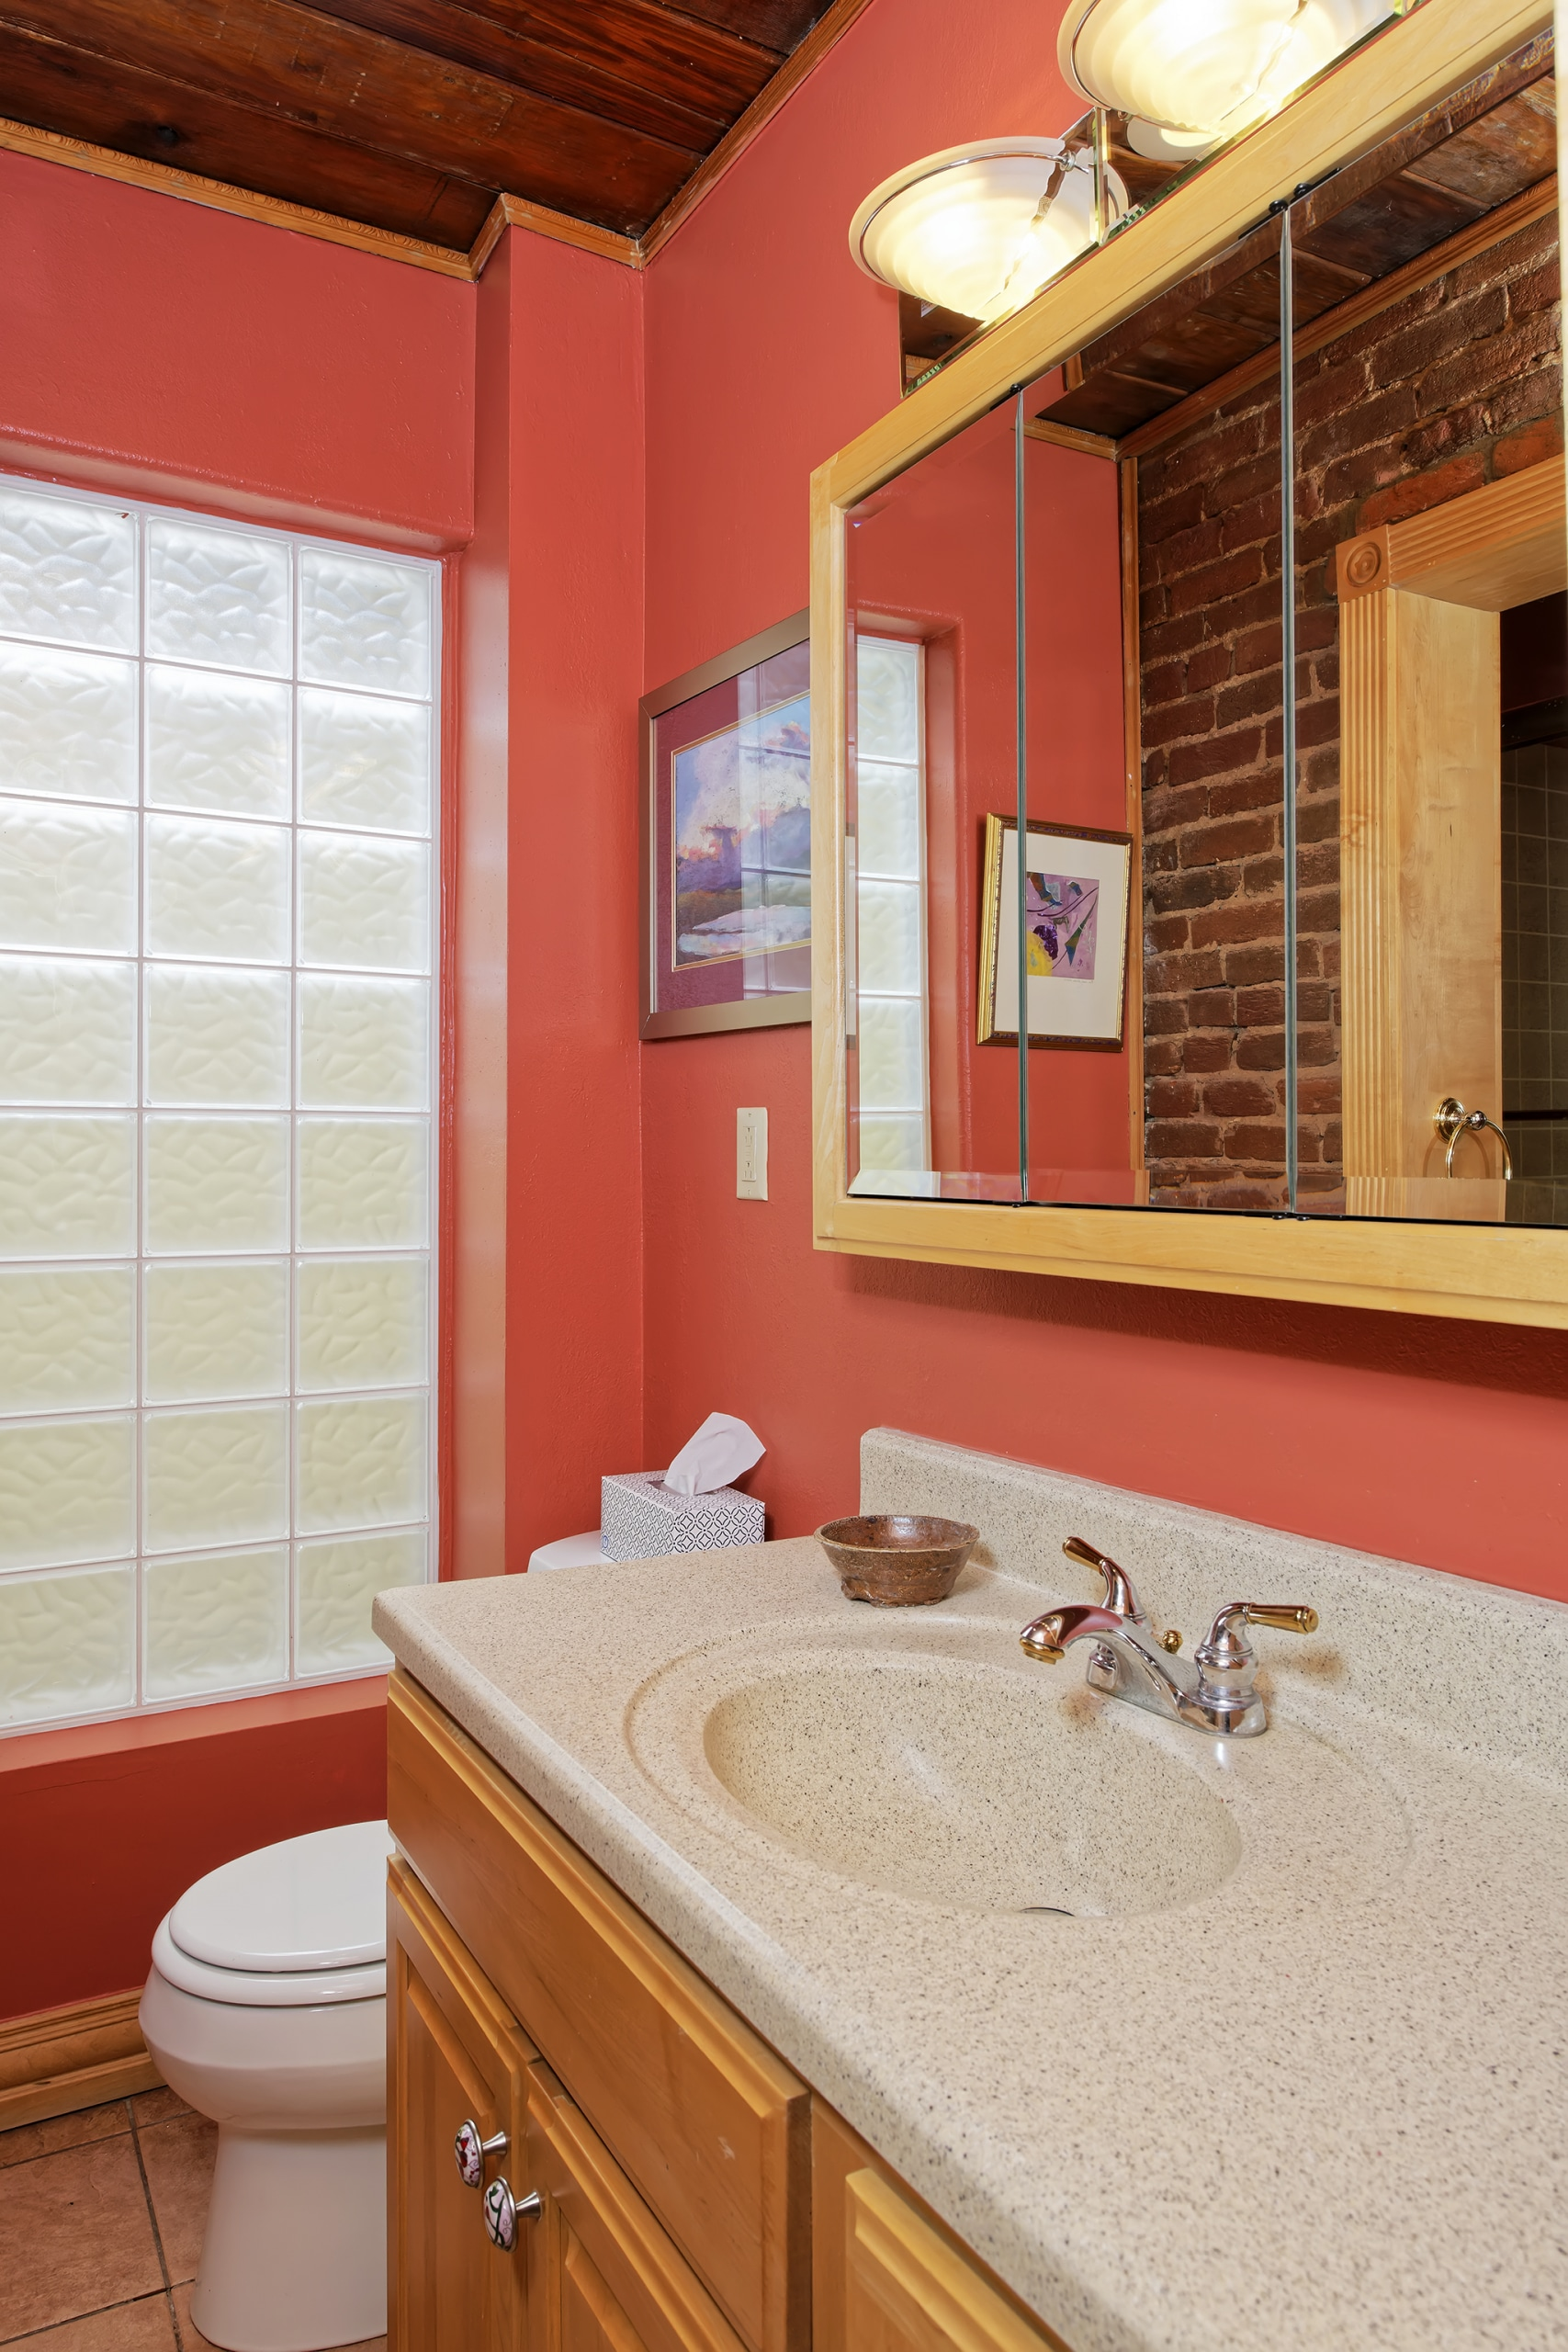 Main floor bath with salmon walls, glass block tile, wood ceiling